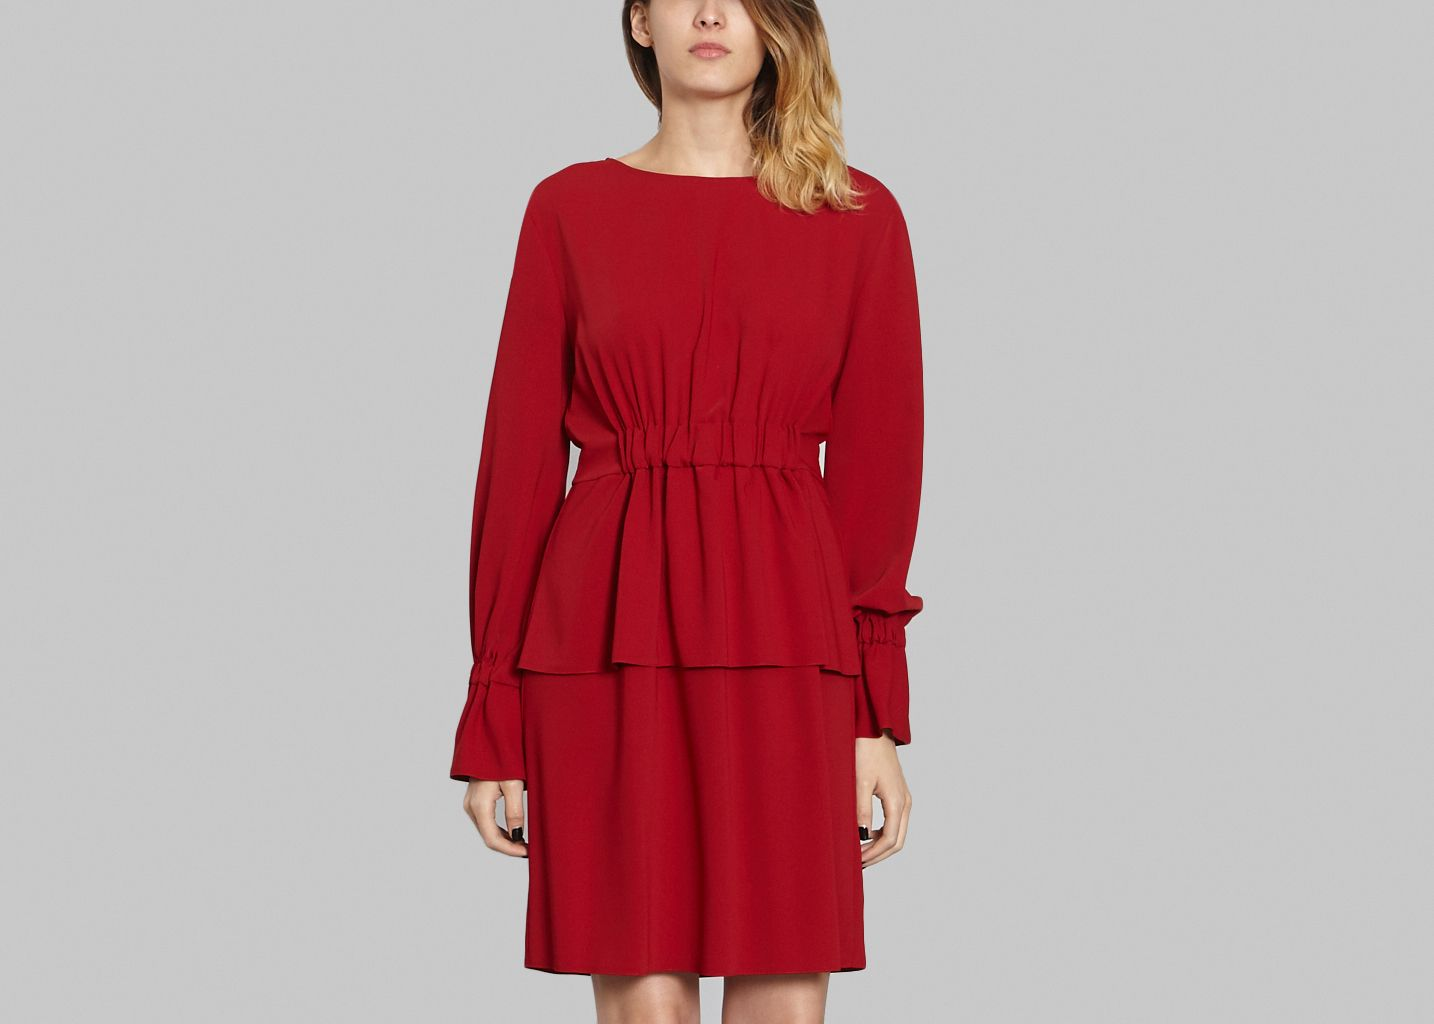 Ruched Dress - MM6